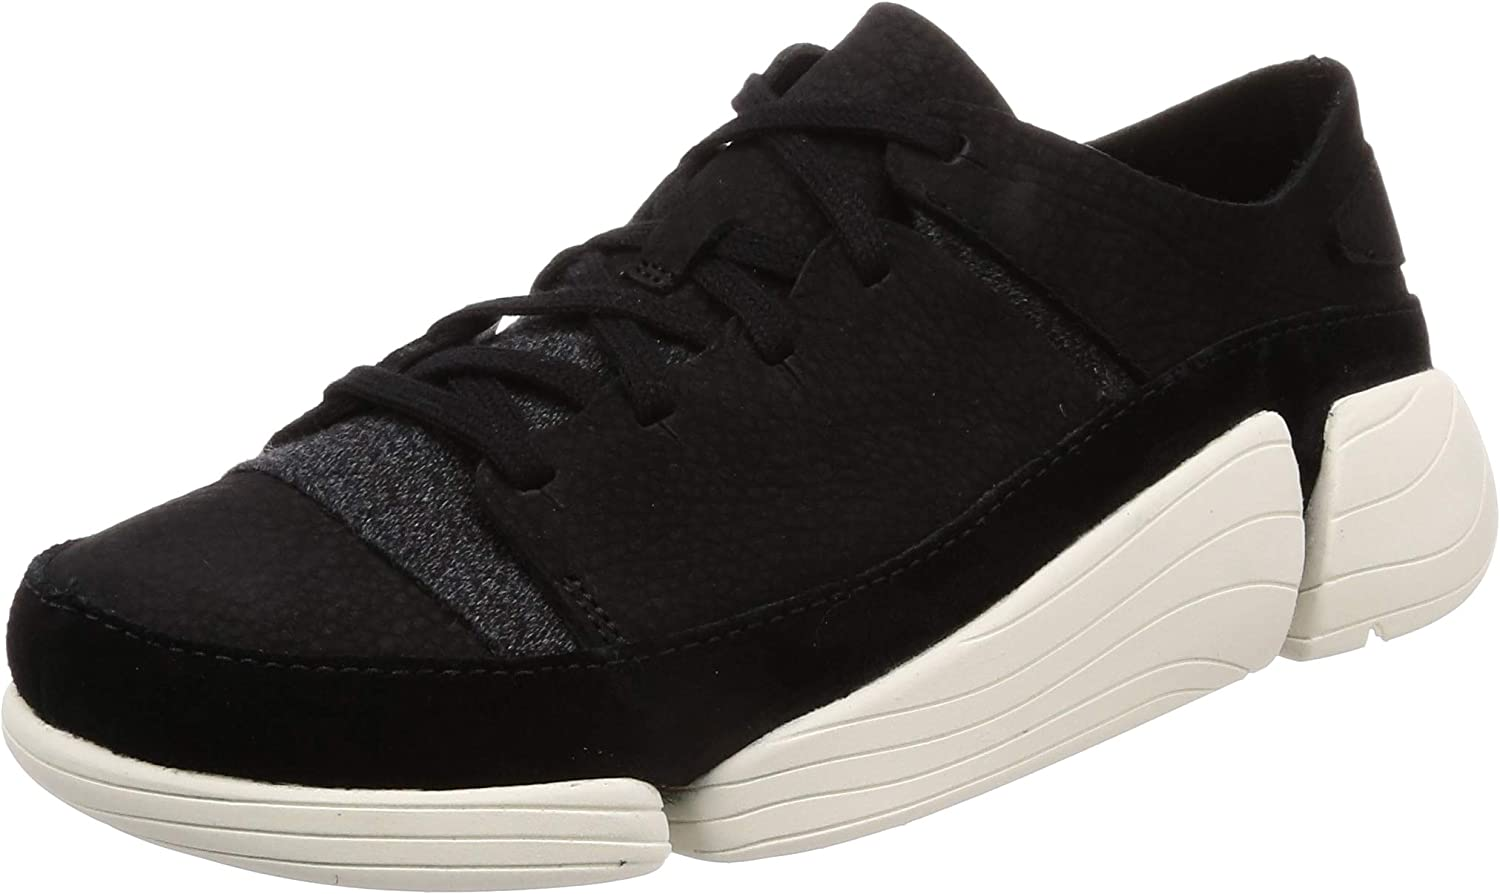 Clarks Originals Damen Trigenic Evo Leather Textile schwarz Trainer 39 EU